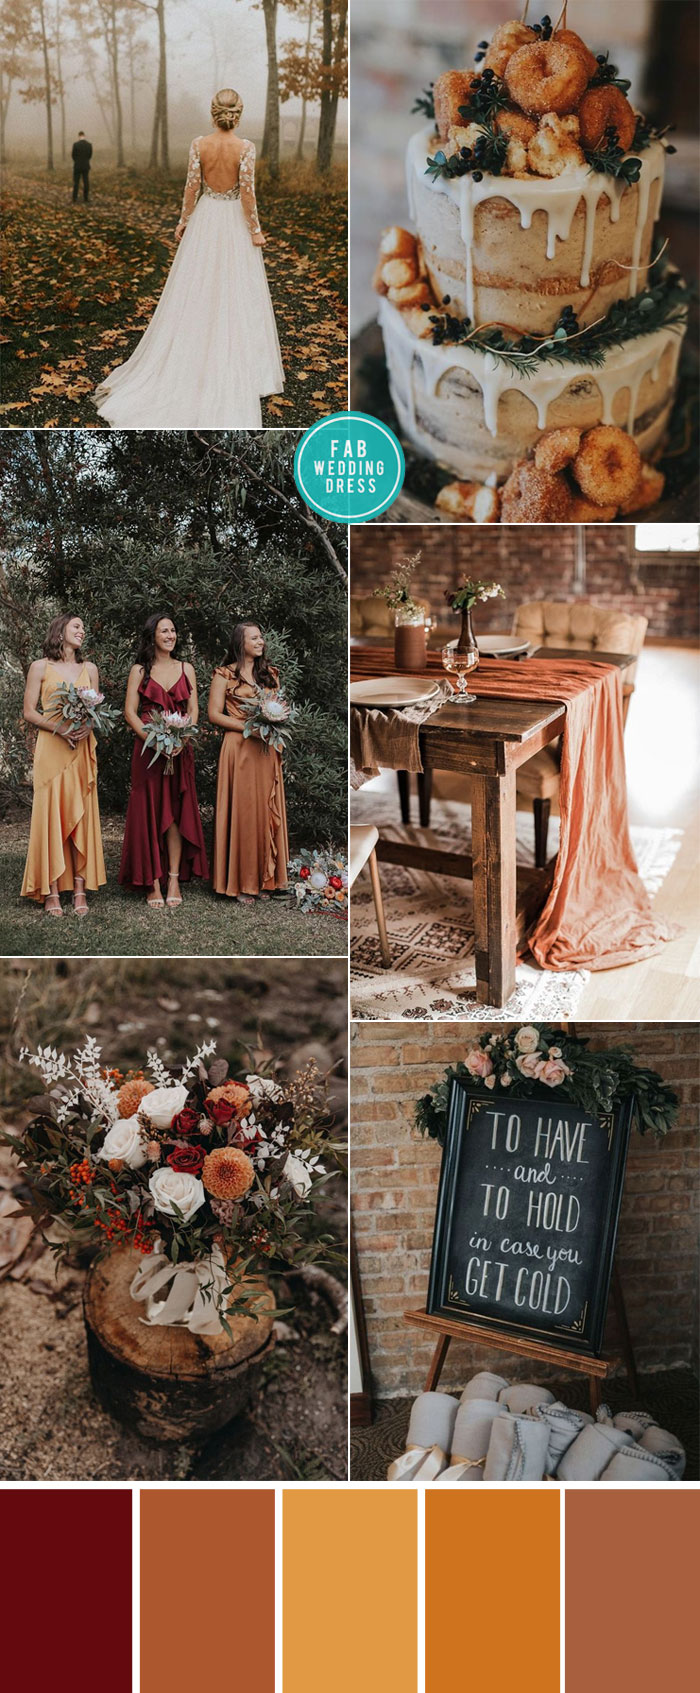 Rust Wedding Color Ideas For Cozy Fall Weddings #rust fall wedding, wedding color #weddingcolor #color #colorpalette autumn wedding color , autumn wedding color ideas #terracottawedding terracotta wedding , sunset wedding color